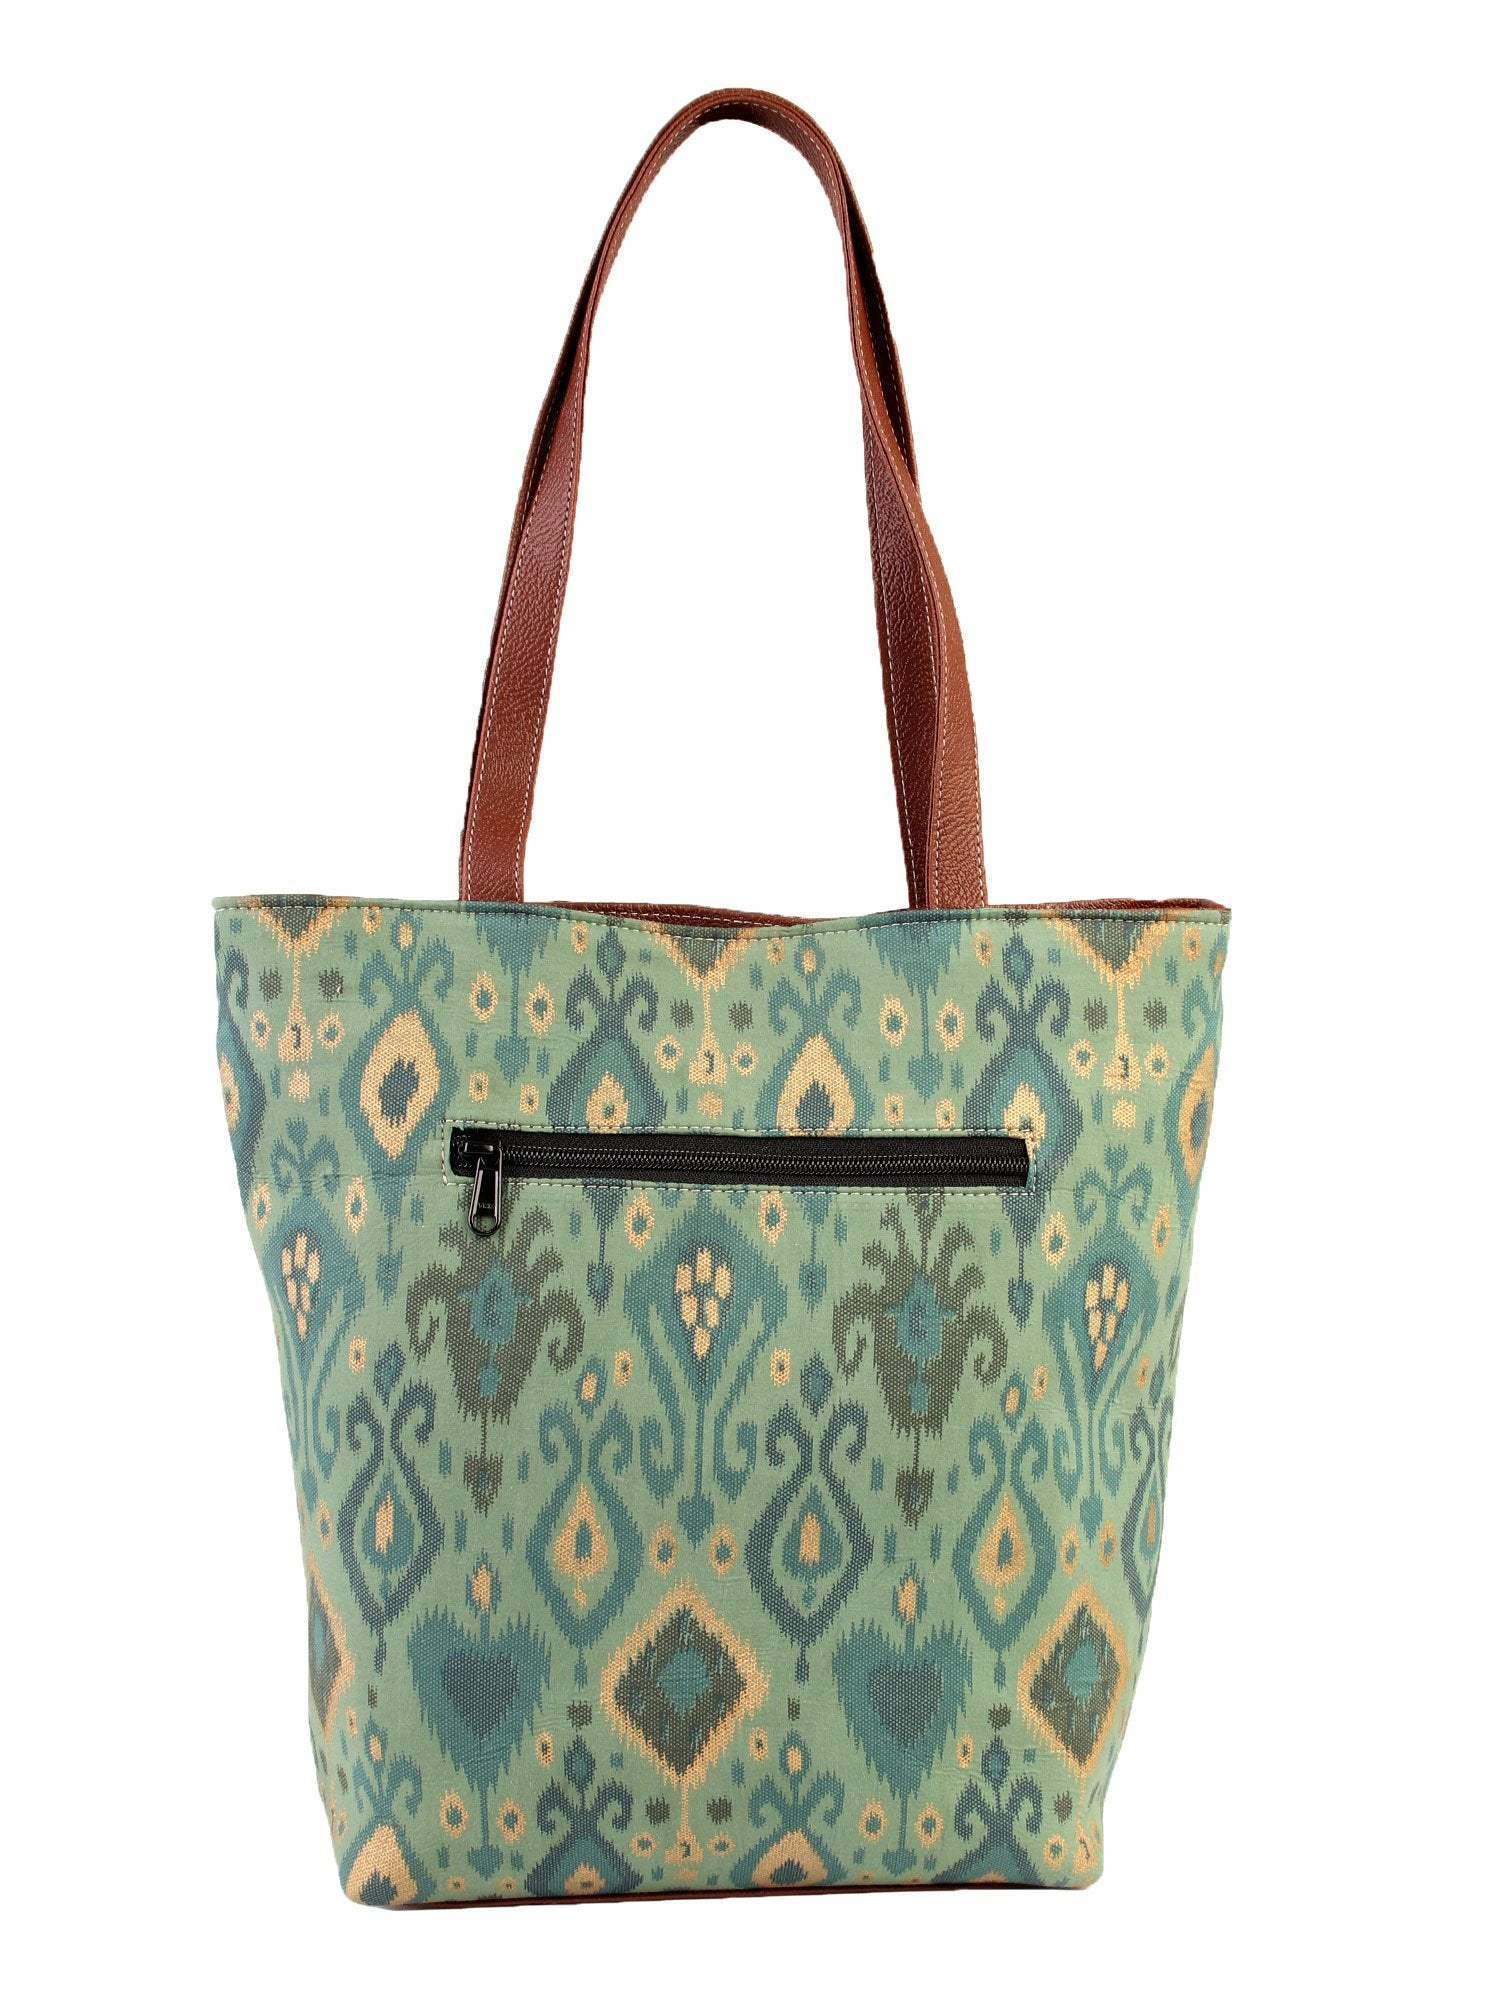 Drippy Printed Tote Bag